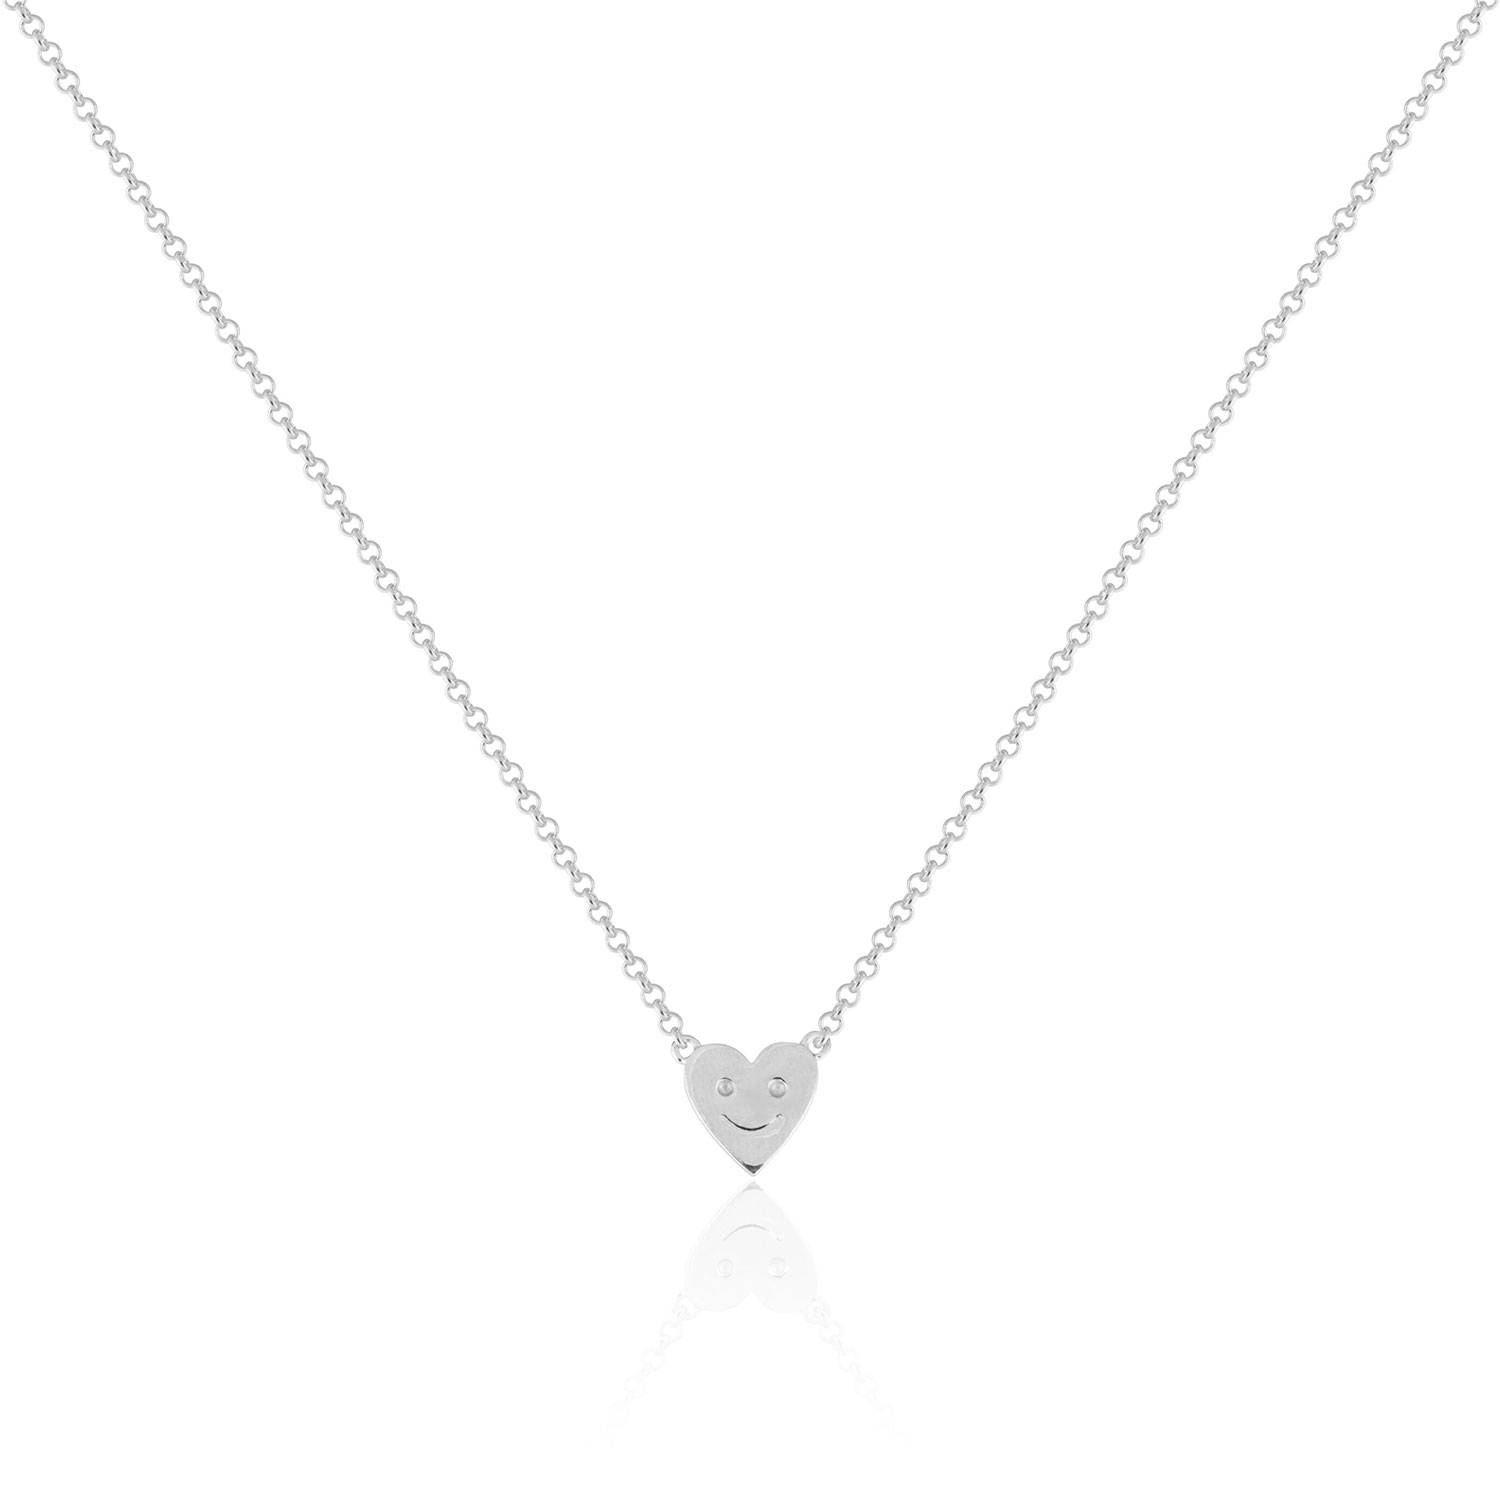 Sophie by Sophie Happy Heart Necklace, Silver